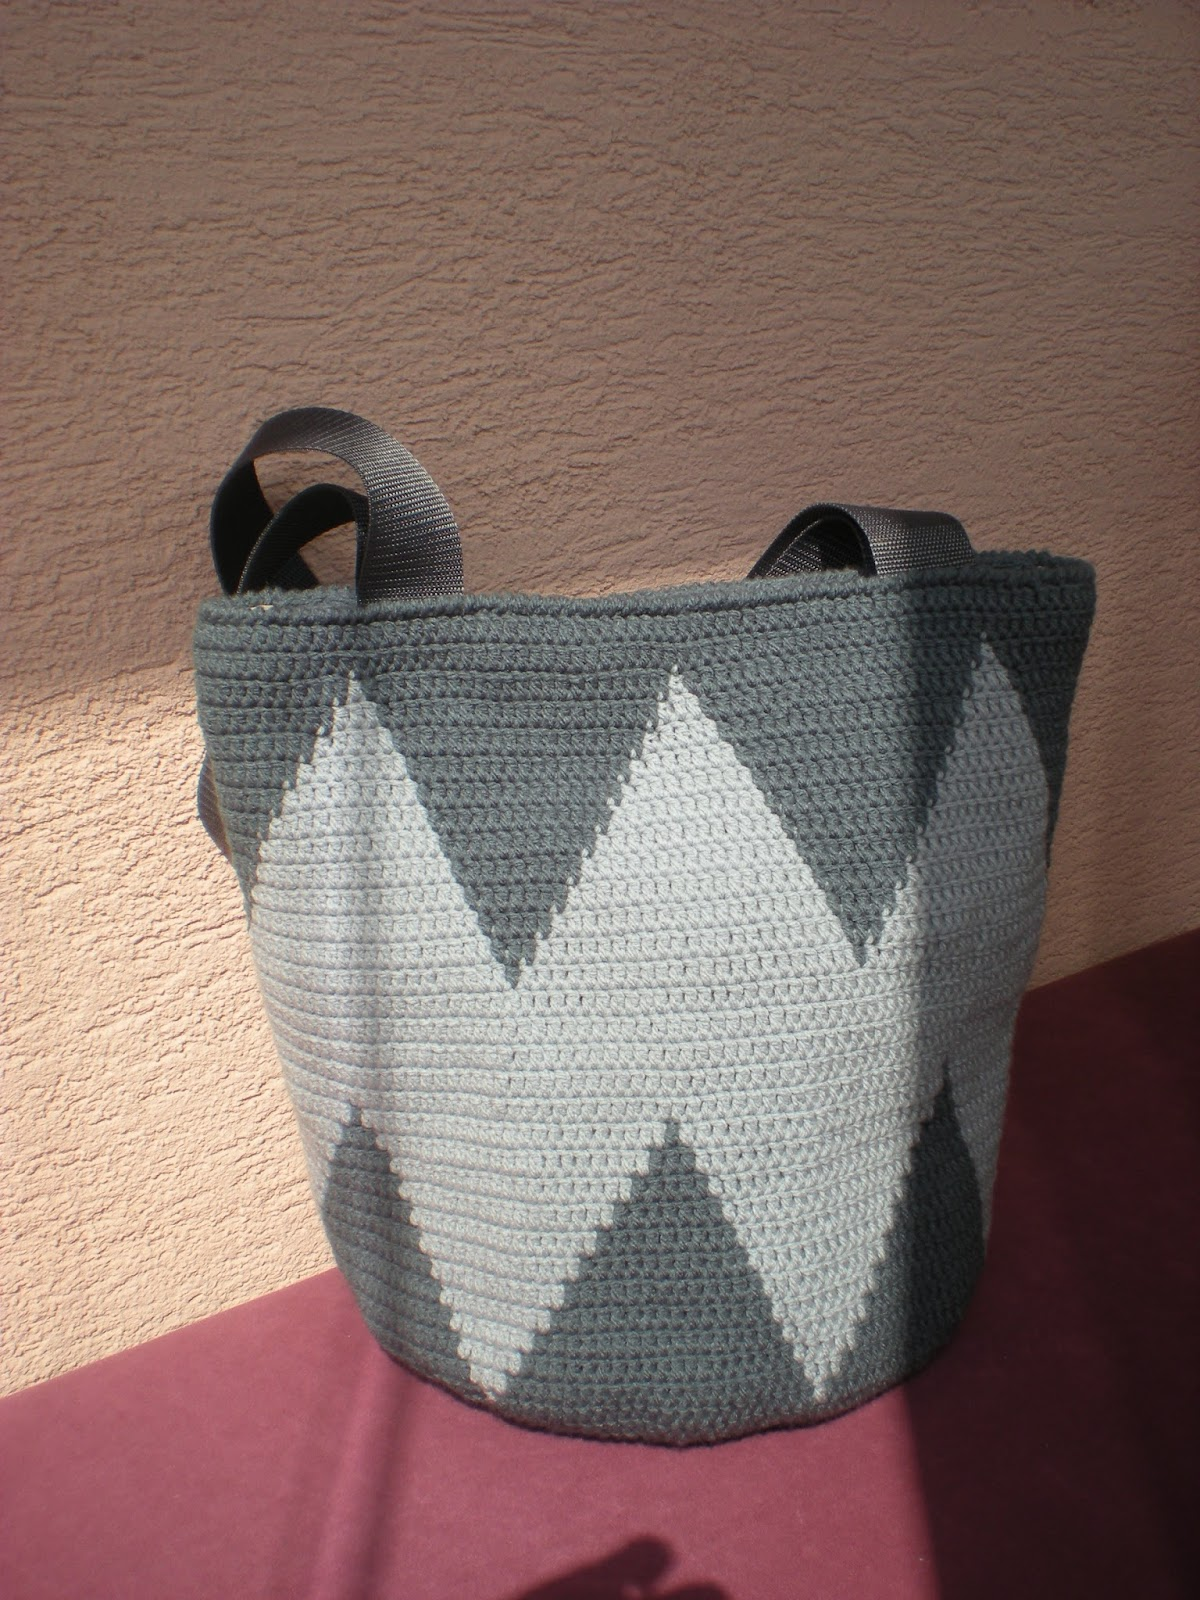 EmmHouse: Sharp tapestry crochet bag – free written pattern